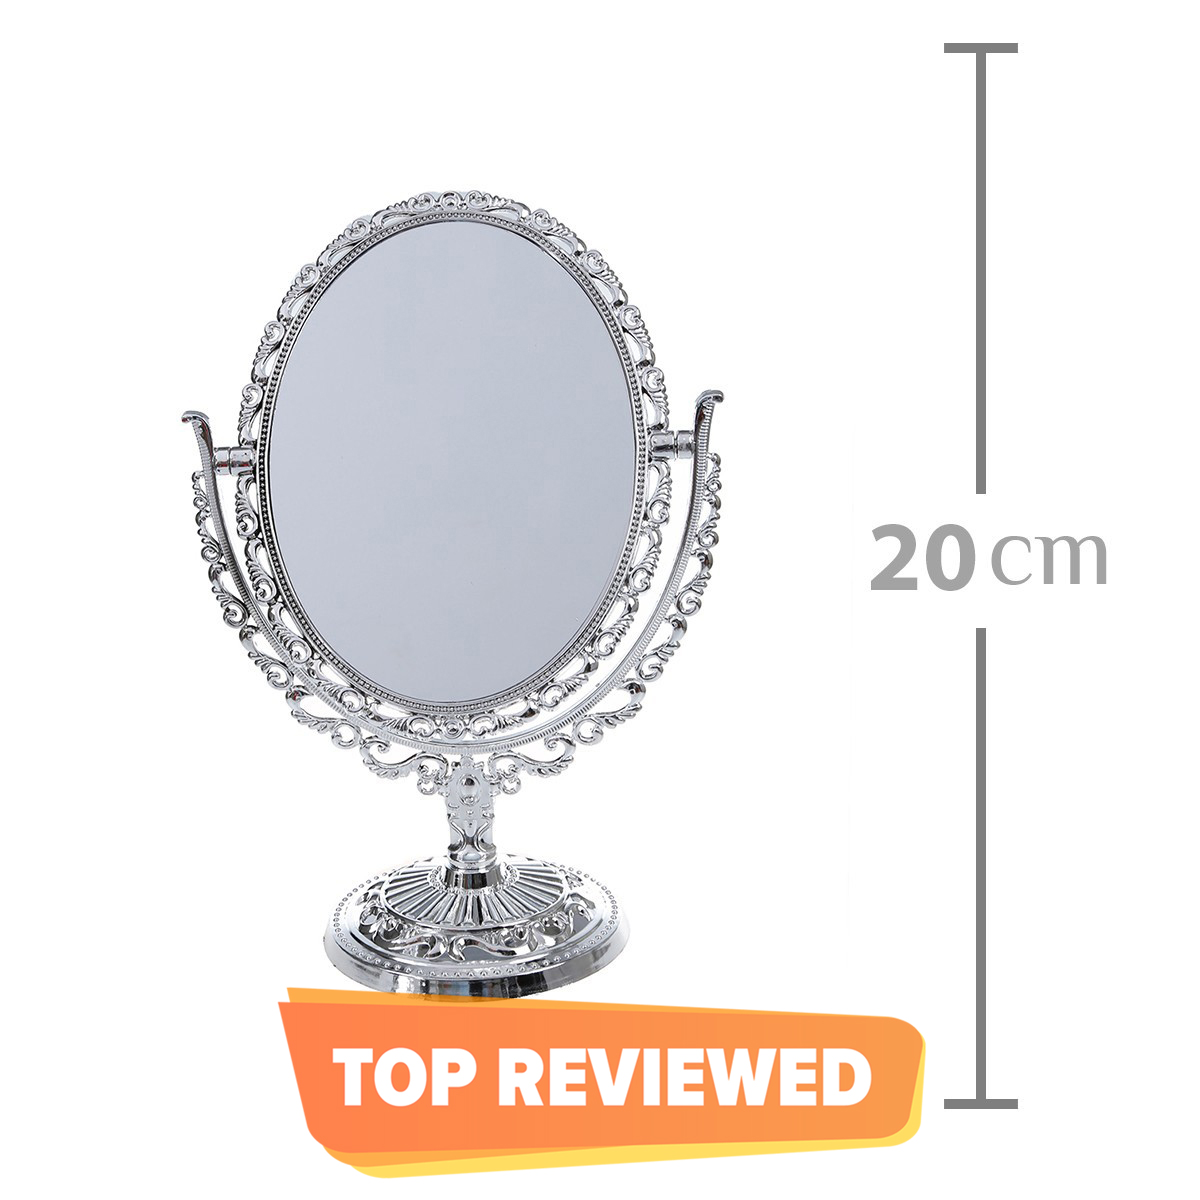 Makeup Mirror Cosmetic Mirror Adjustable Double Side Rare and Zoom View Mirror Silver